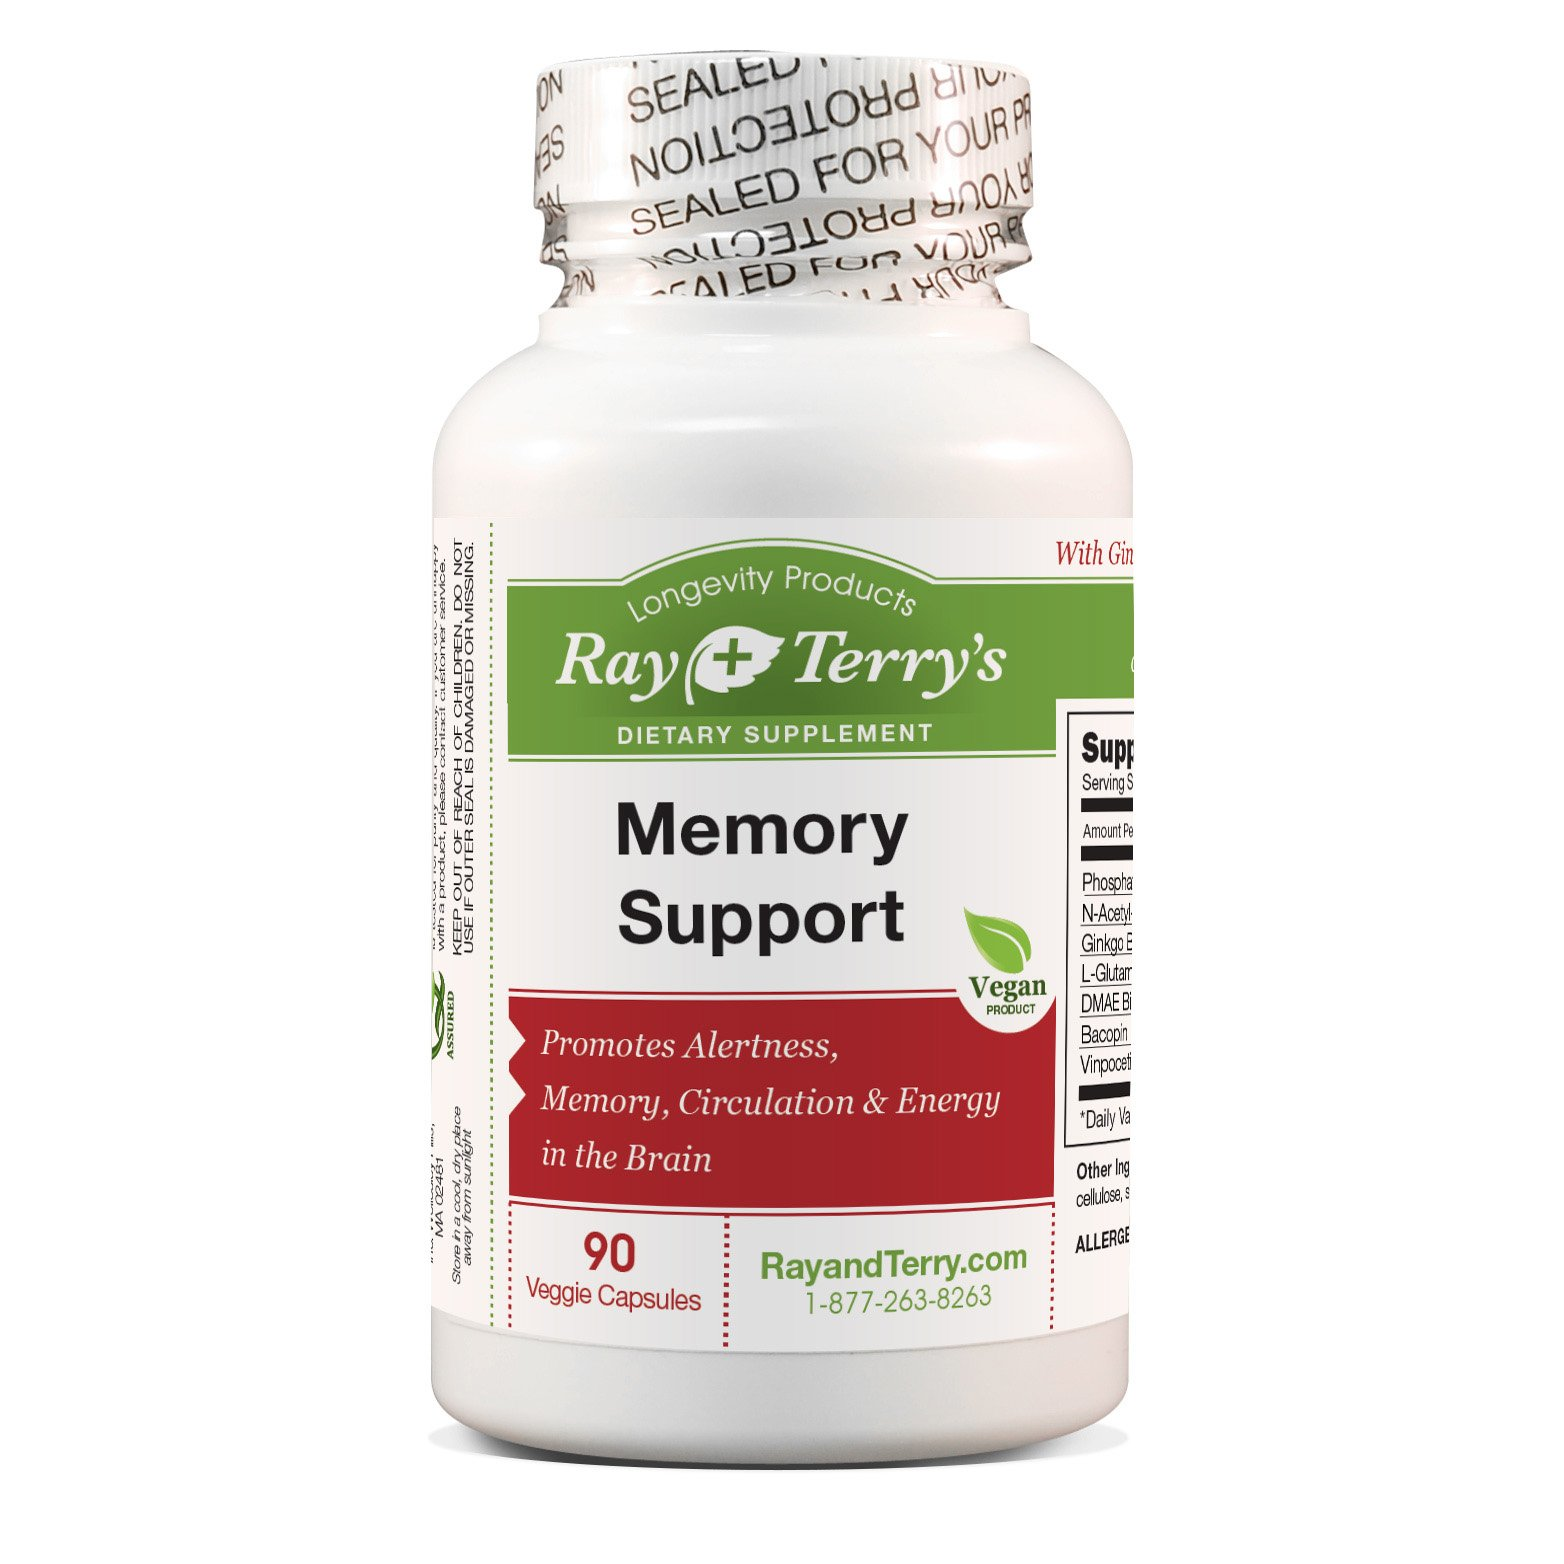 Ray & Terry's Memory Support (90 count) Complex with Vinpocetine, DMAE and Ginkgo for Brain Health, Circulation, Memory and Focus